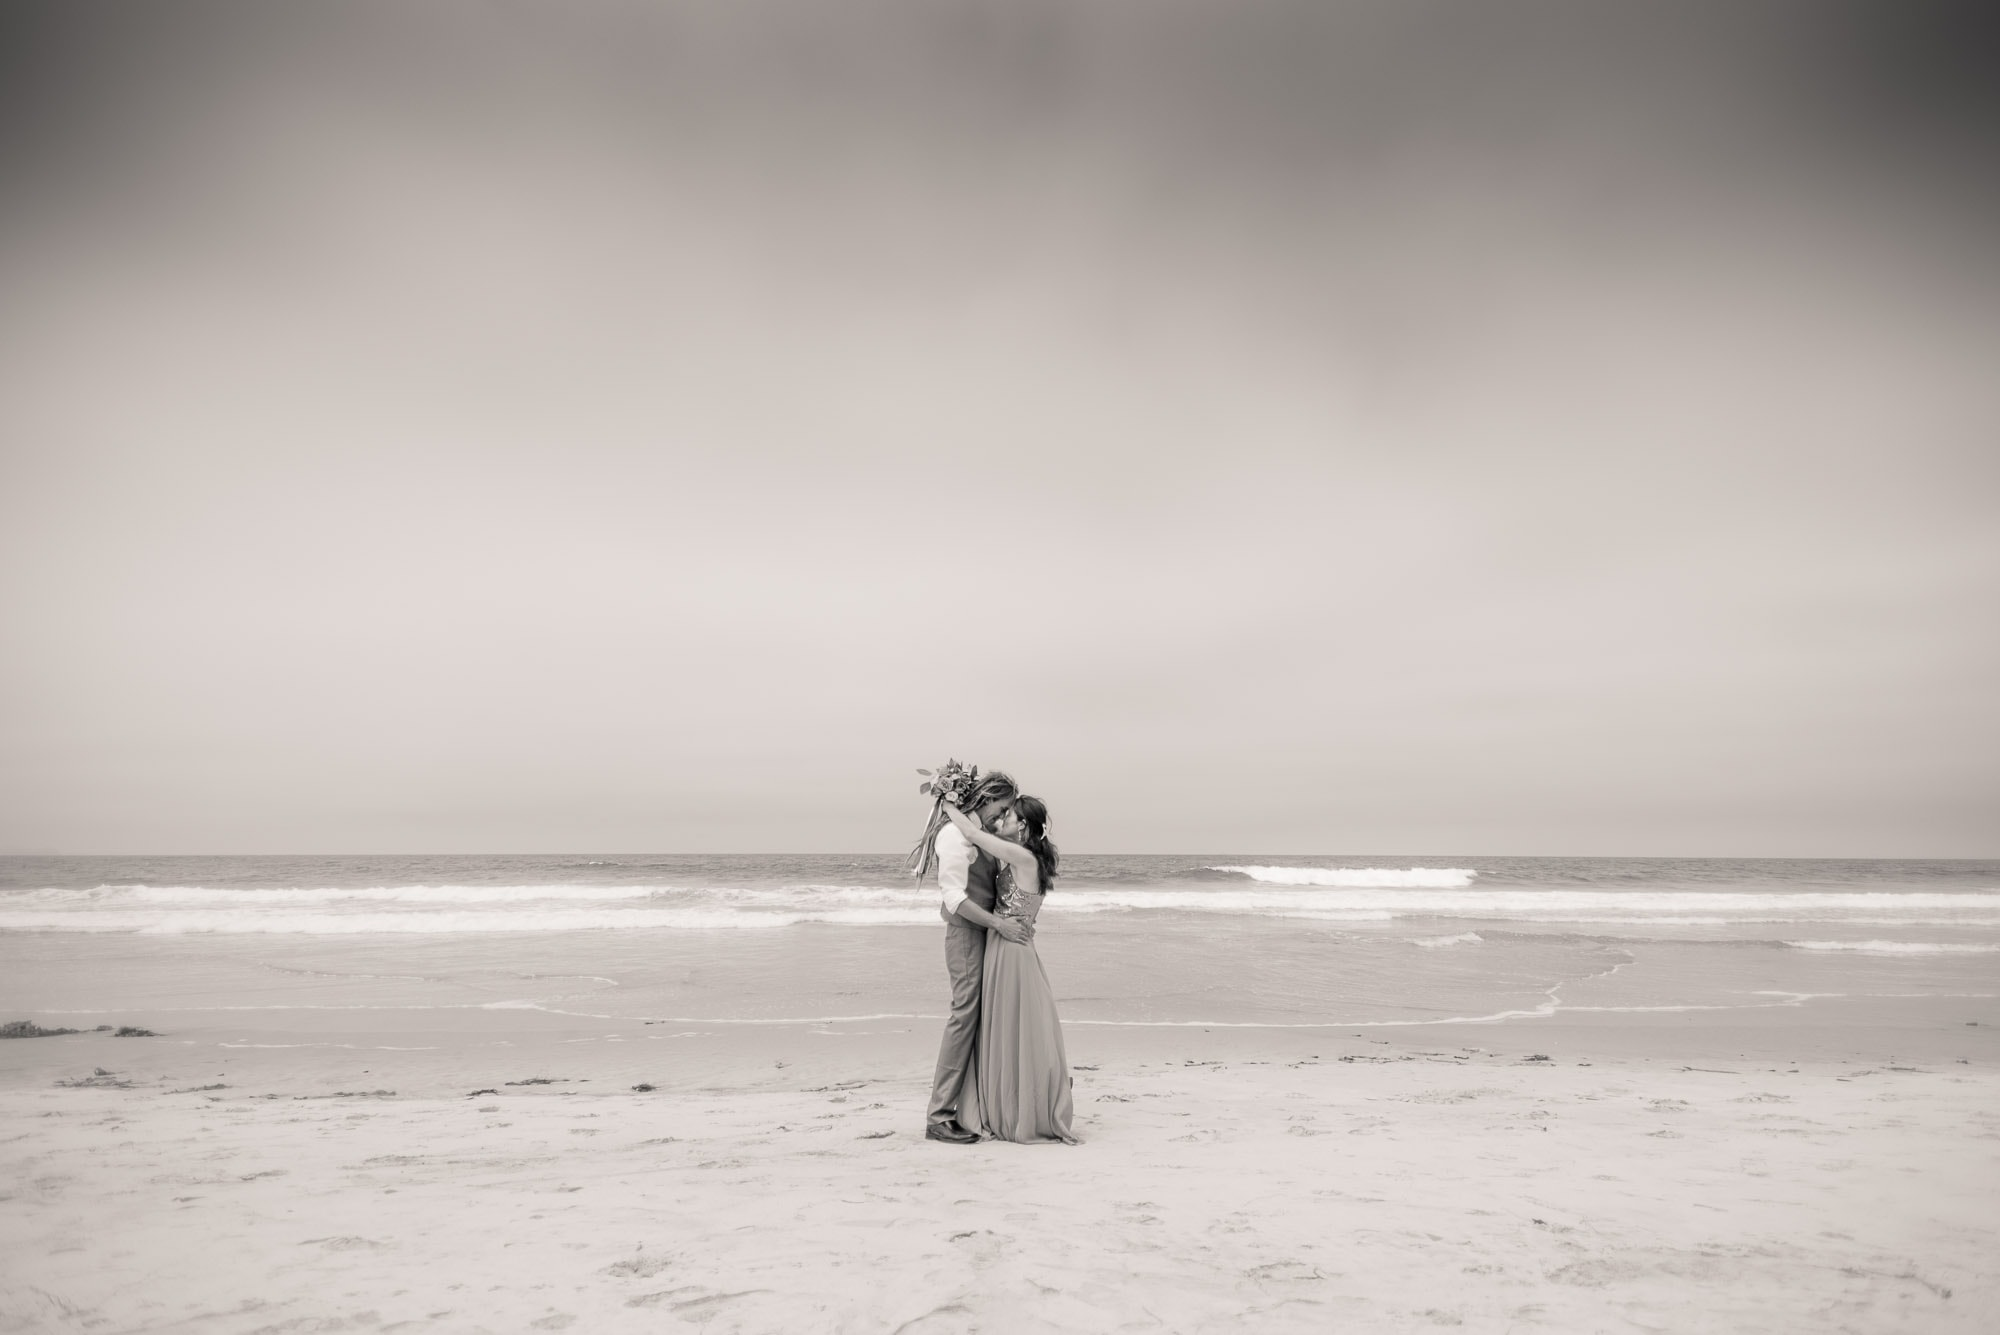 031_Alan_and_Heidi_Brianne_Nathan_San_Diego_Elopement